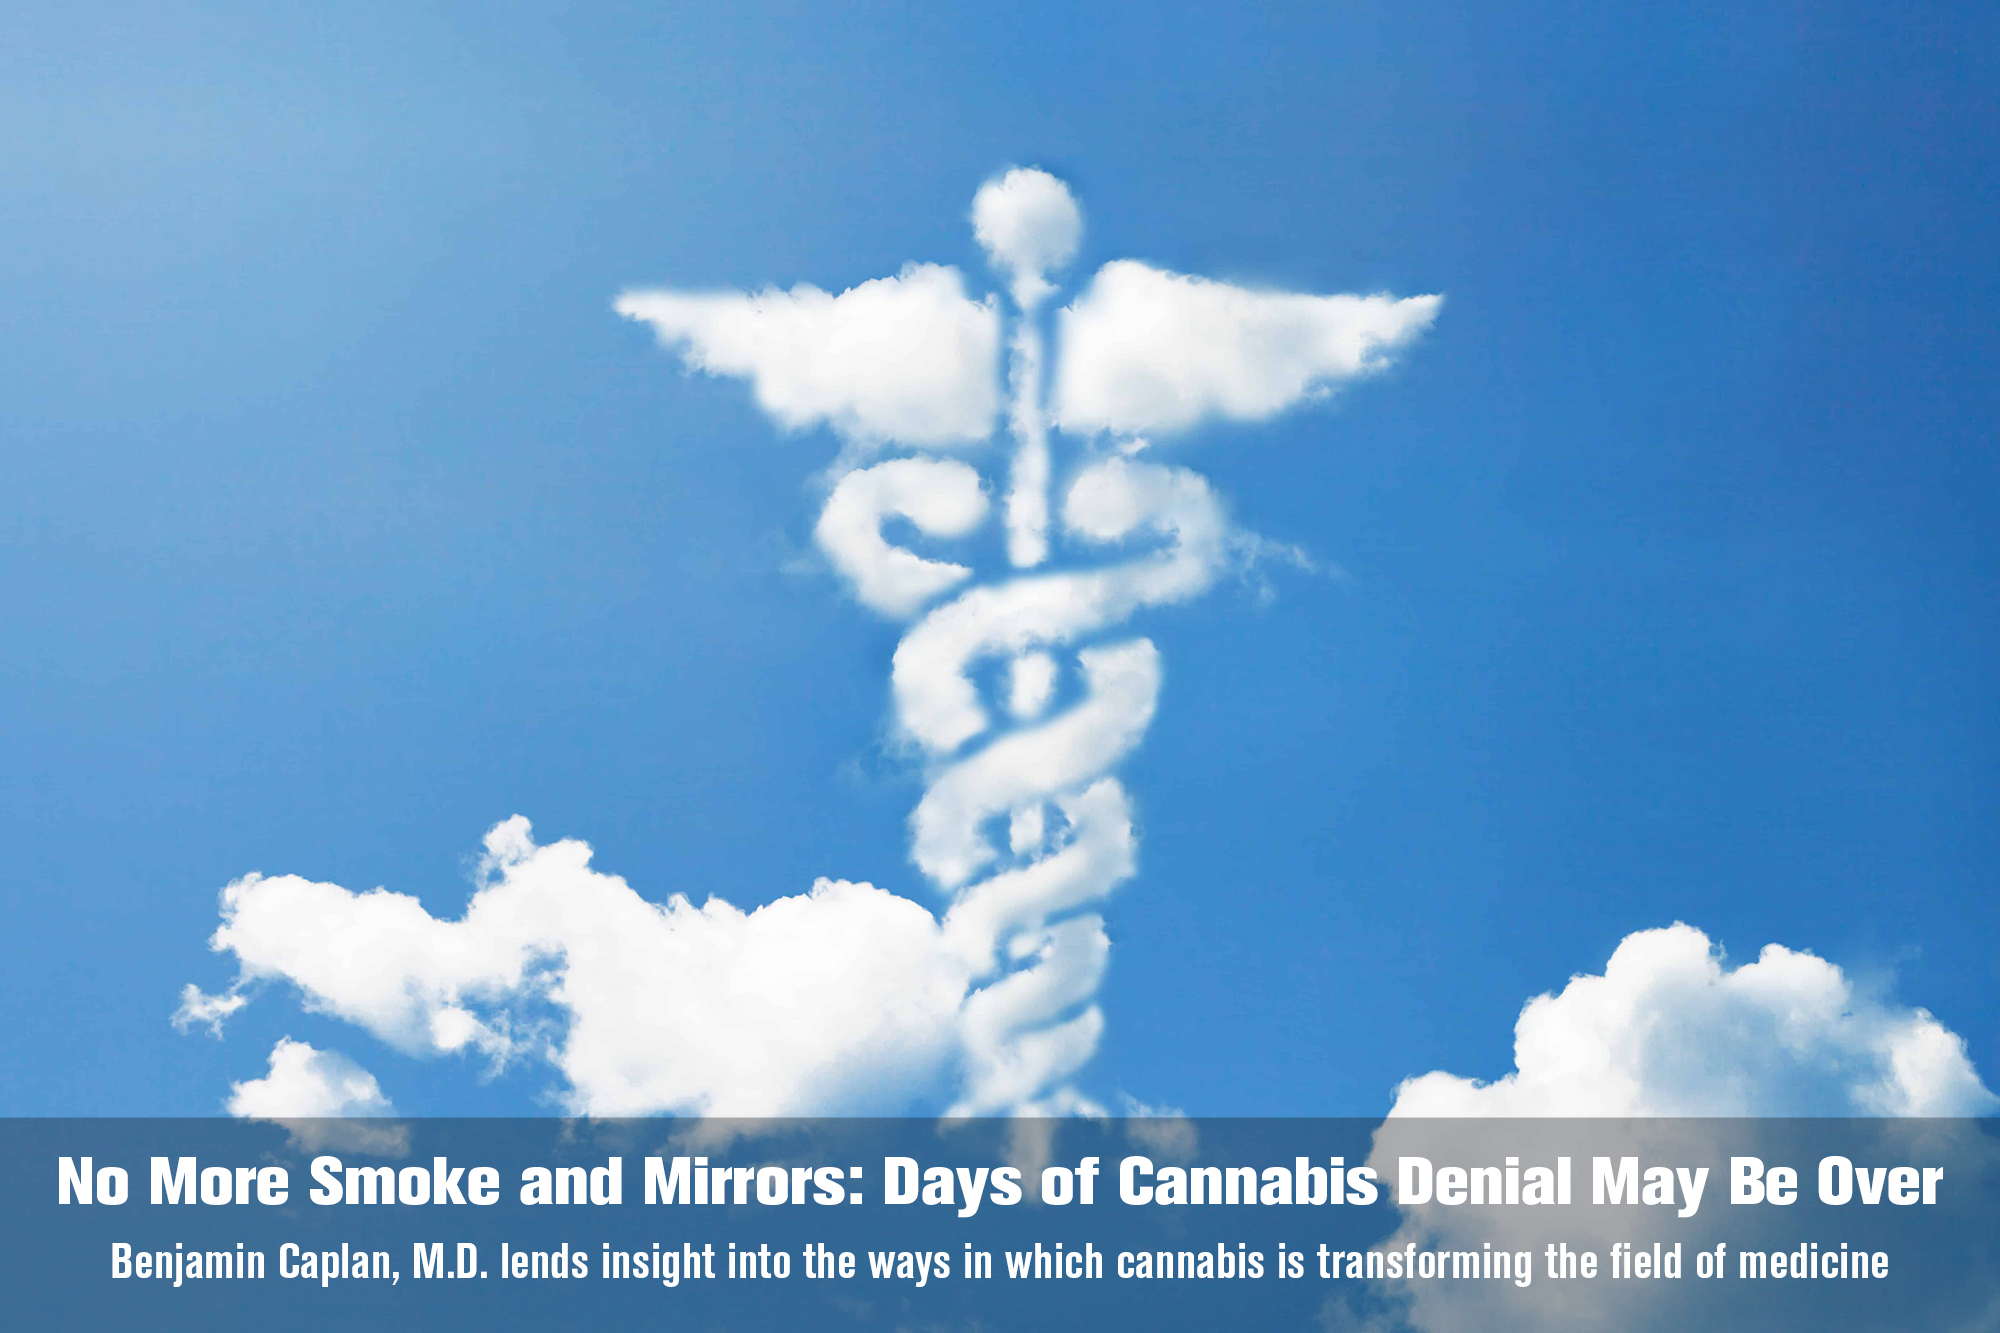 No More Smoke and Mirrors- Days of Cannabis Denial May Be Over